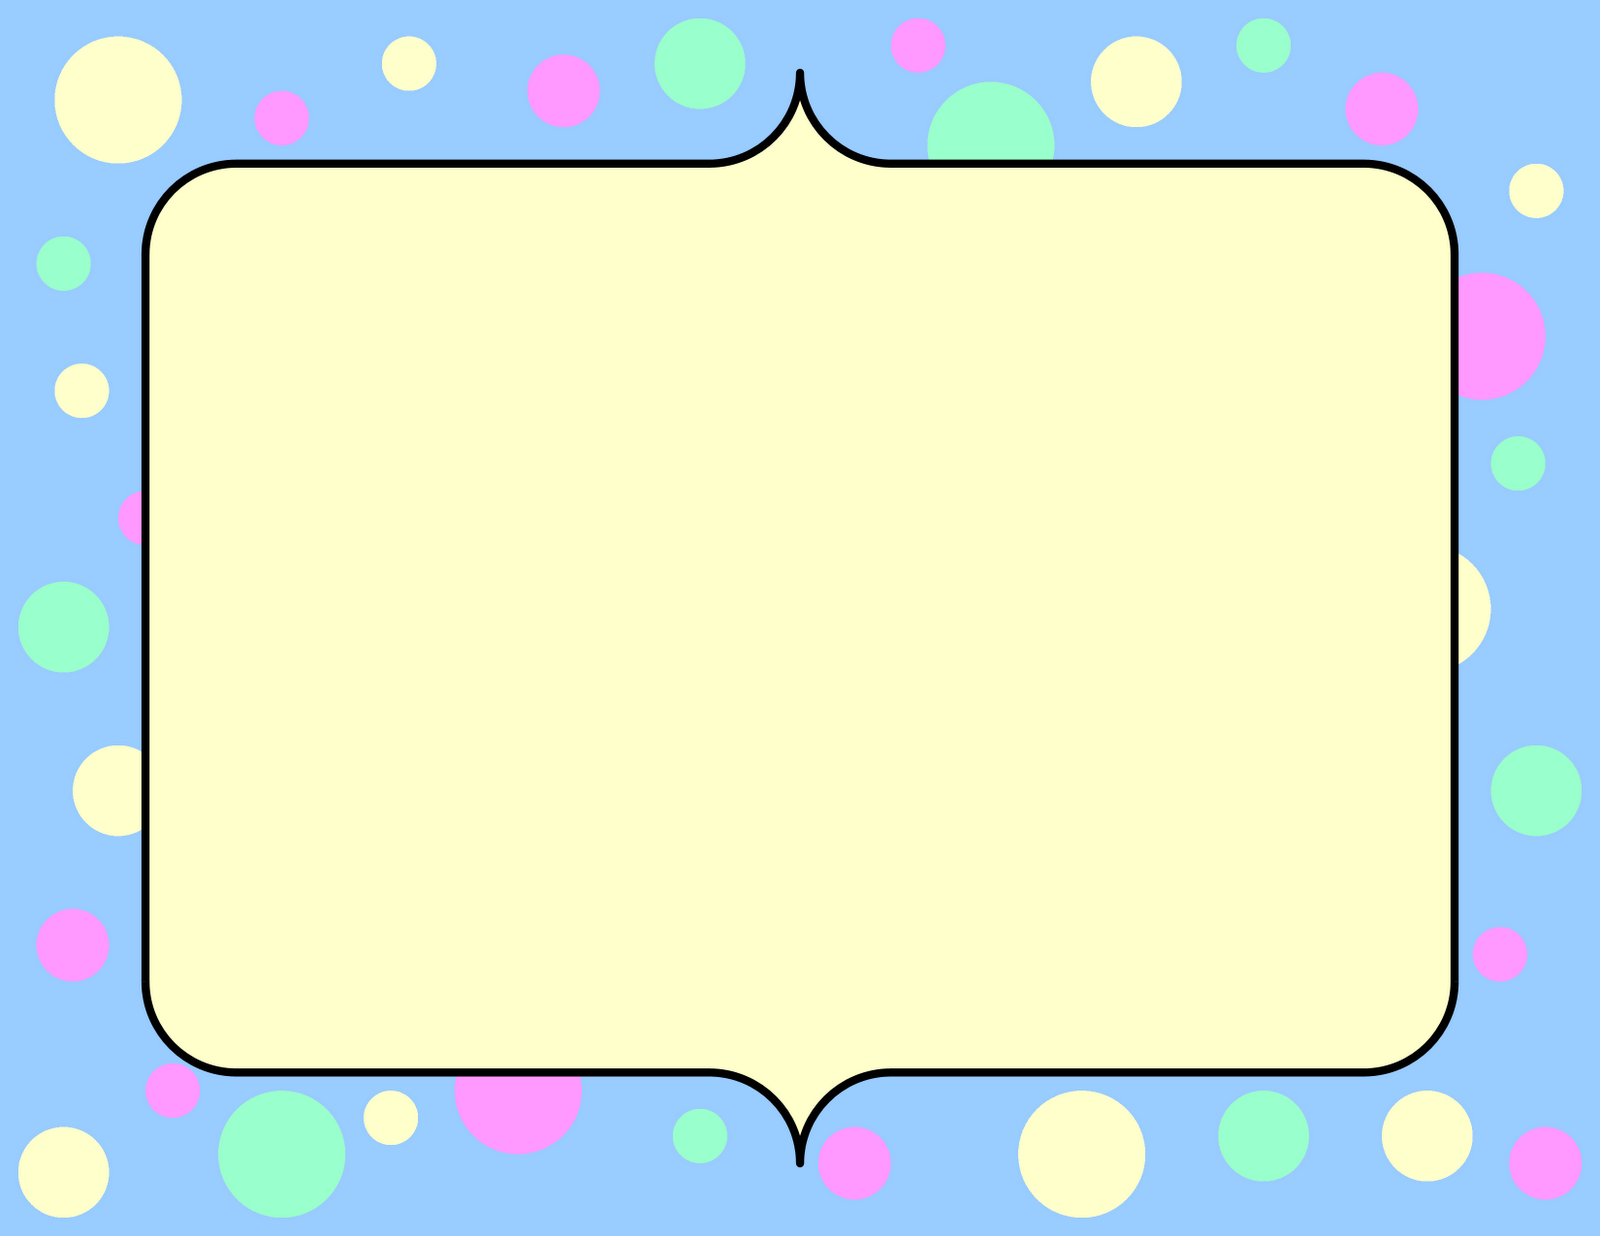 Cute photo frame clipart vector free stock Free Cute Frame Cliparts, Download Free Clip Art, Free Clip Art on ... vector free stock